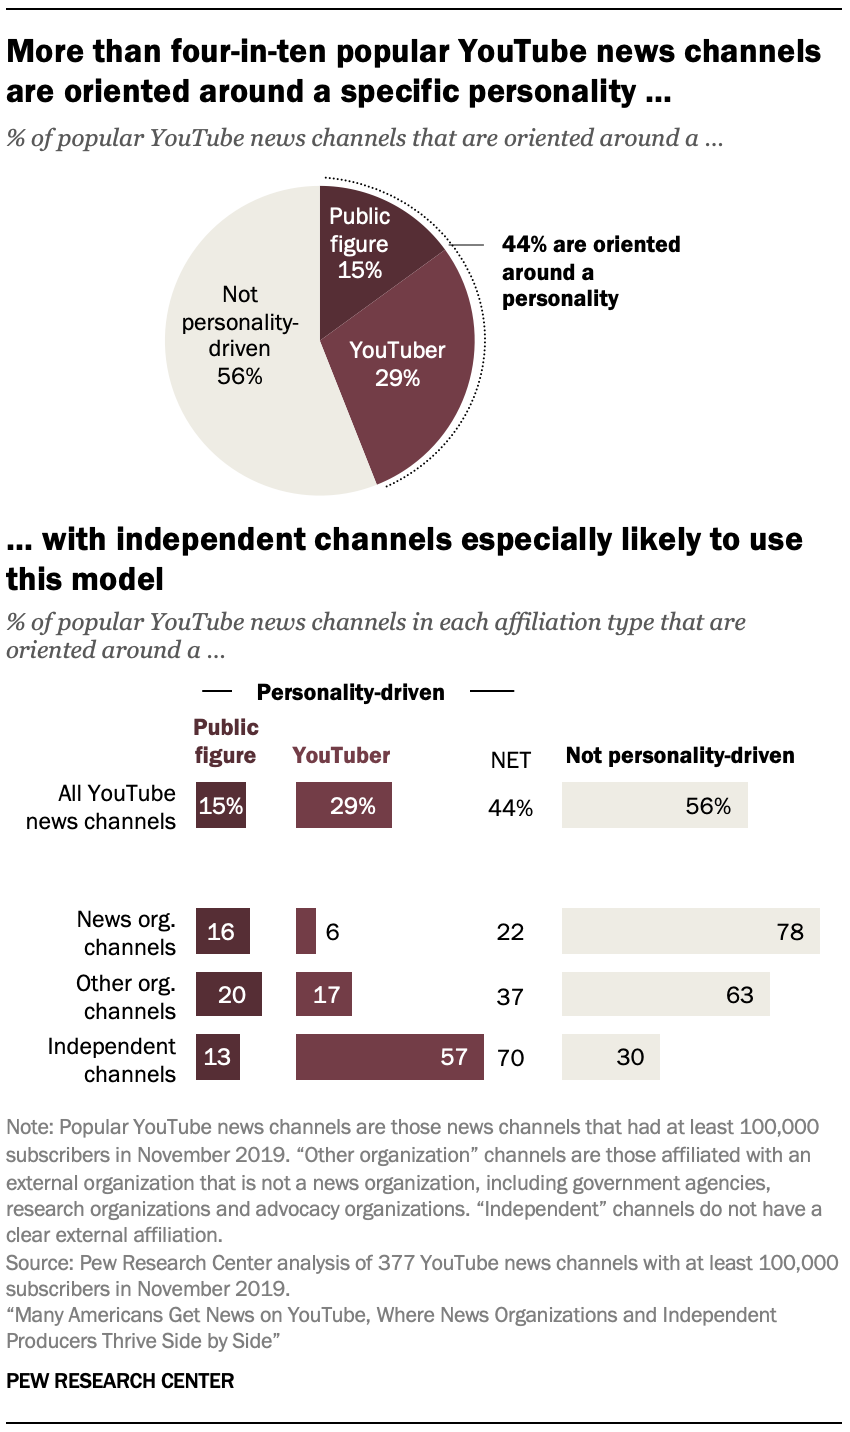 More than four-in-ten popular YouTube news channels are oriented around a specific personality … with independent channels especially likely to use this model